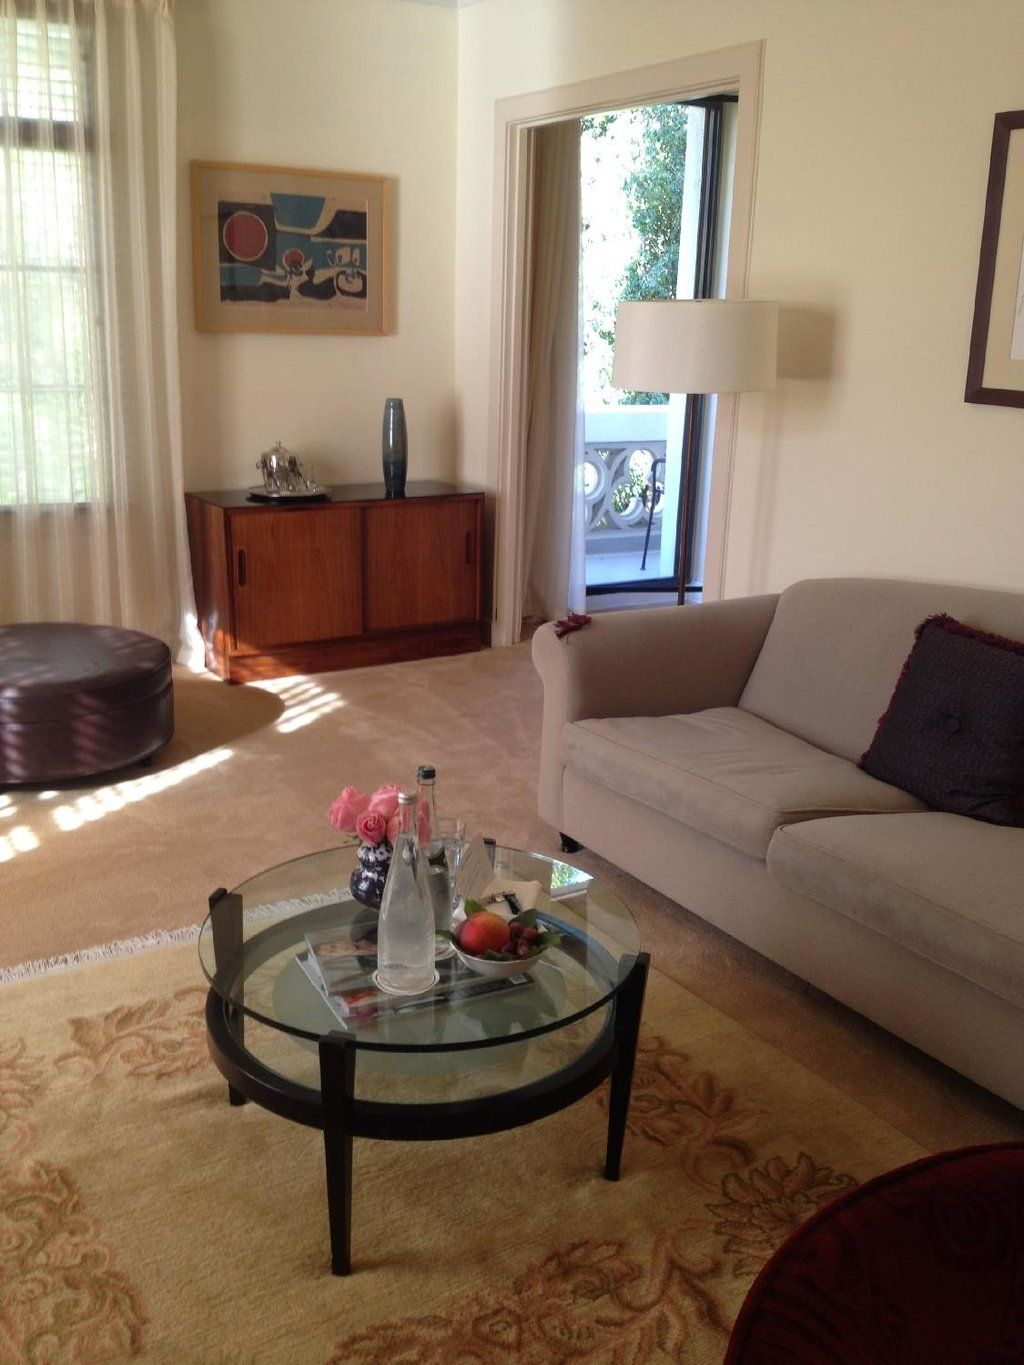 Cau Marmont West Hollywood Ca Hotel Reviews Tripadvisor